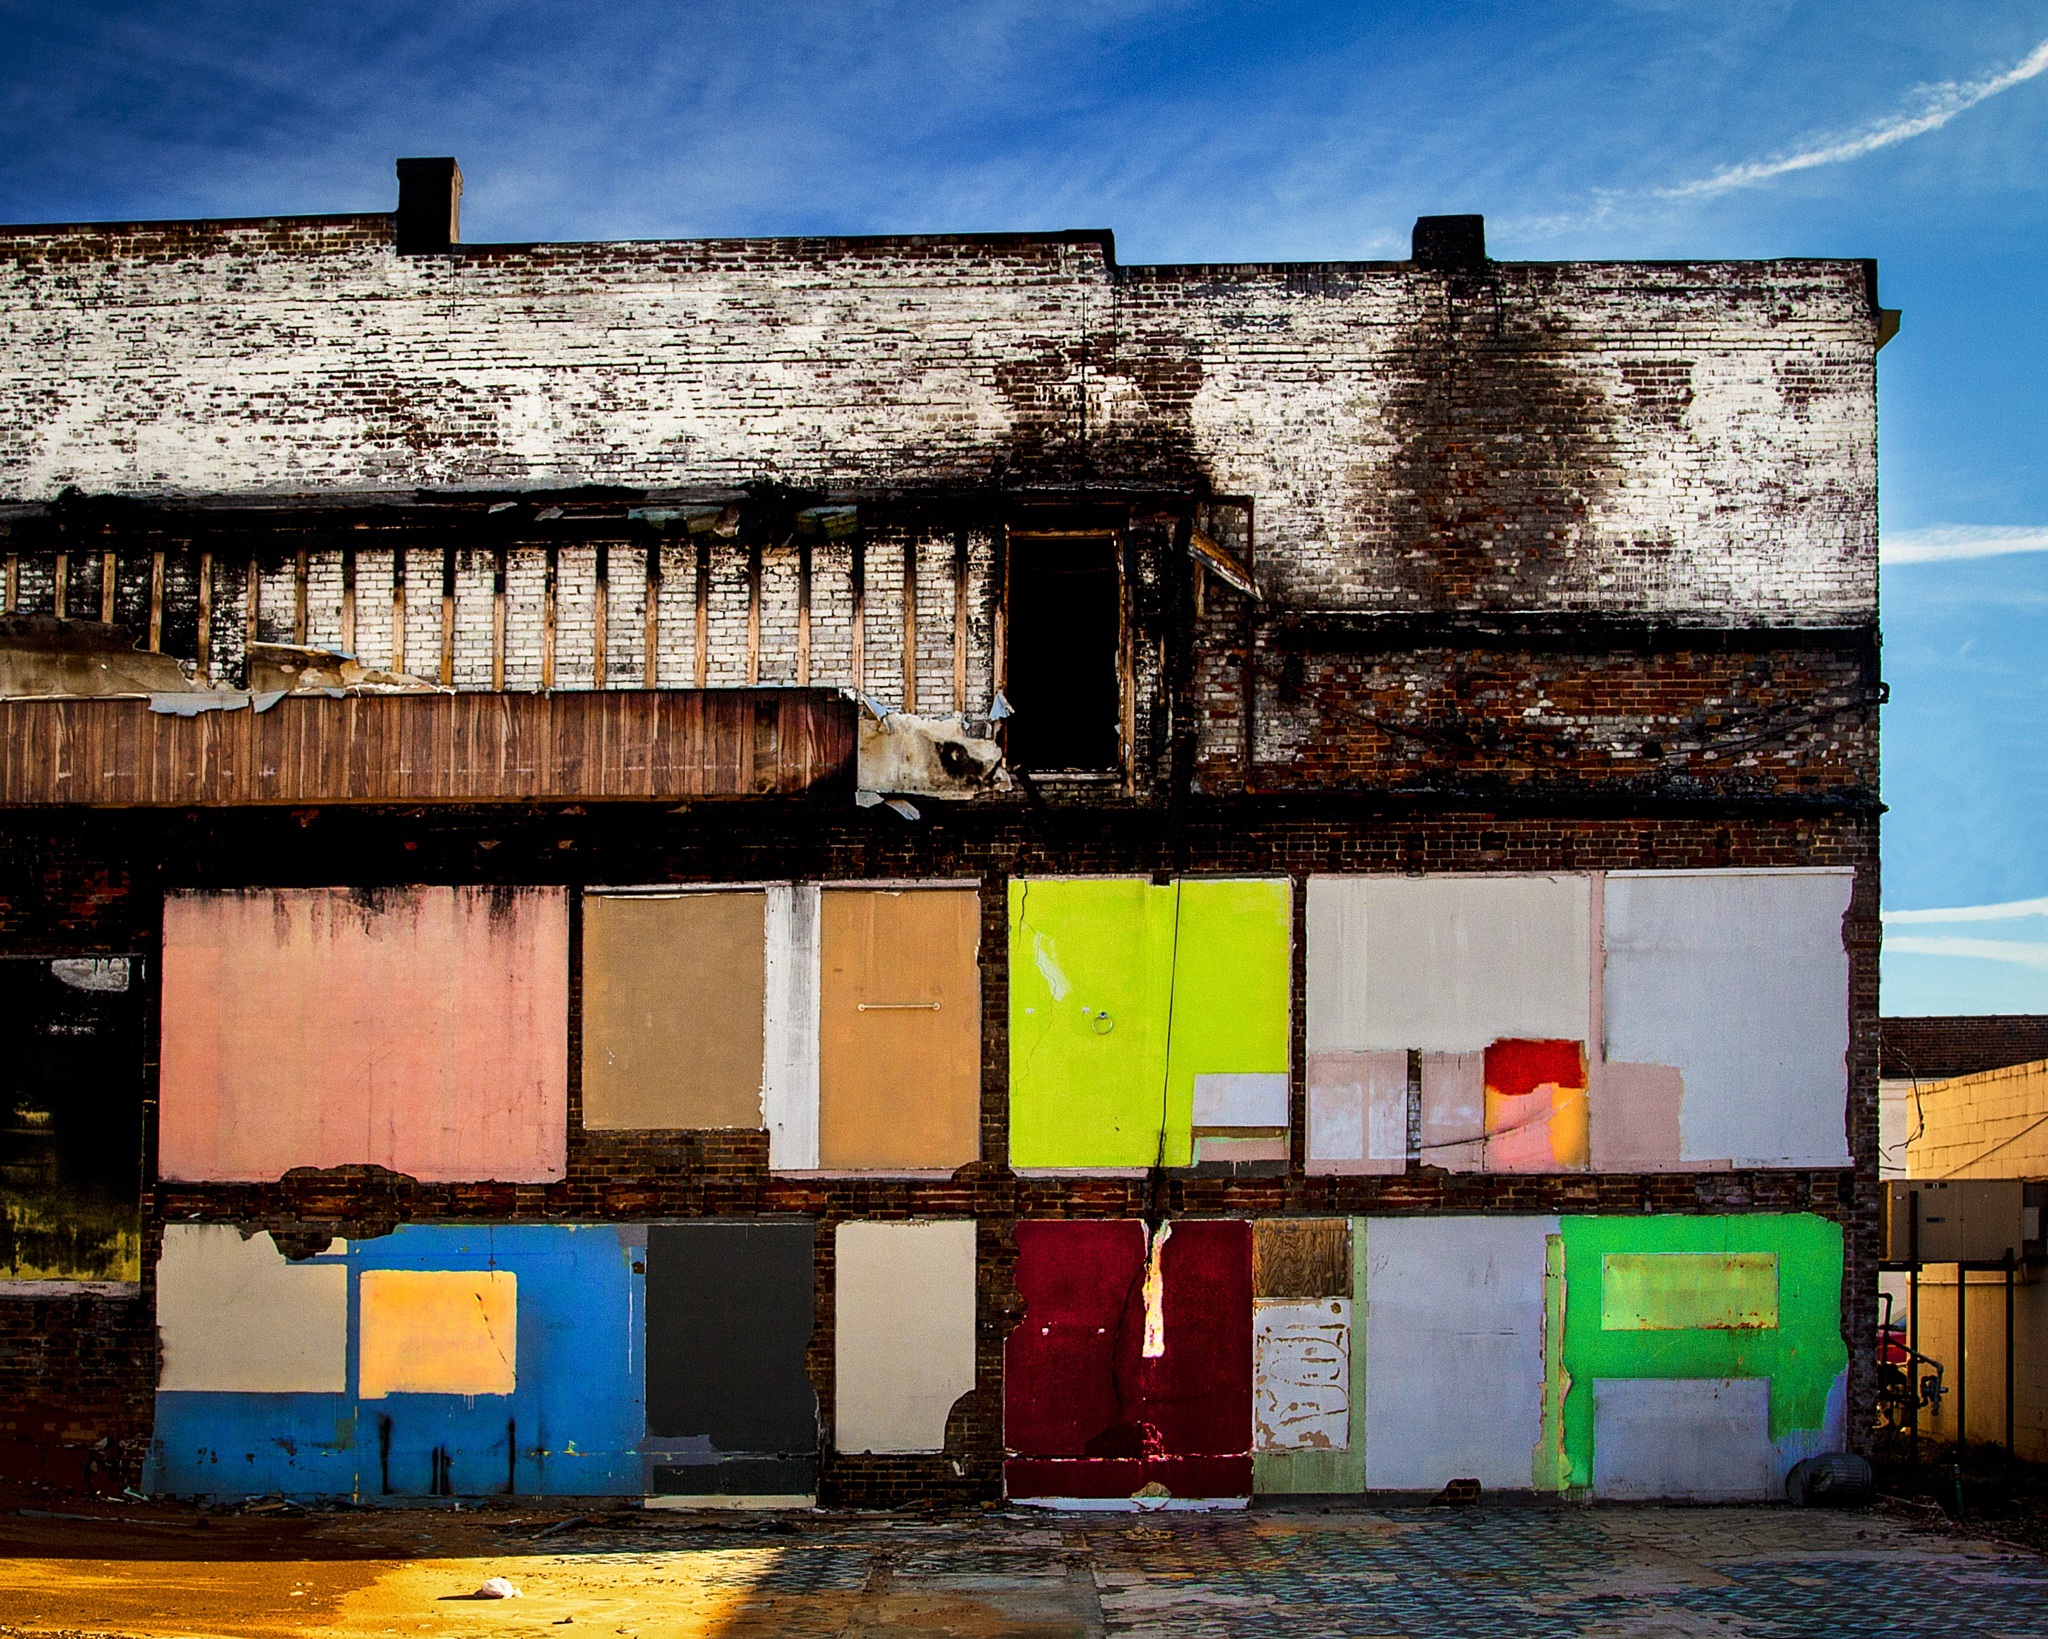 The Colors Survived - Ripley, Mississippi by Leroy